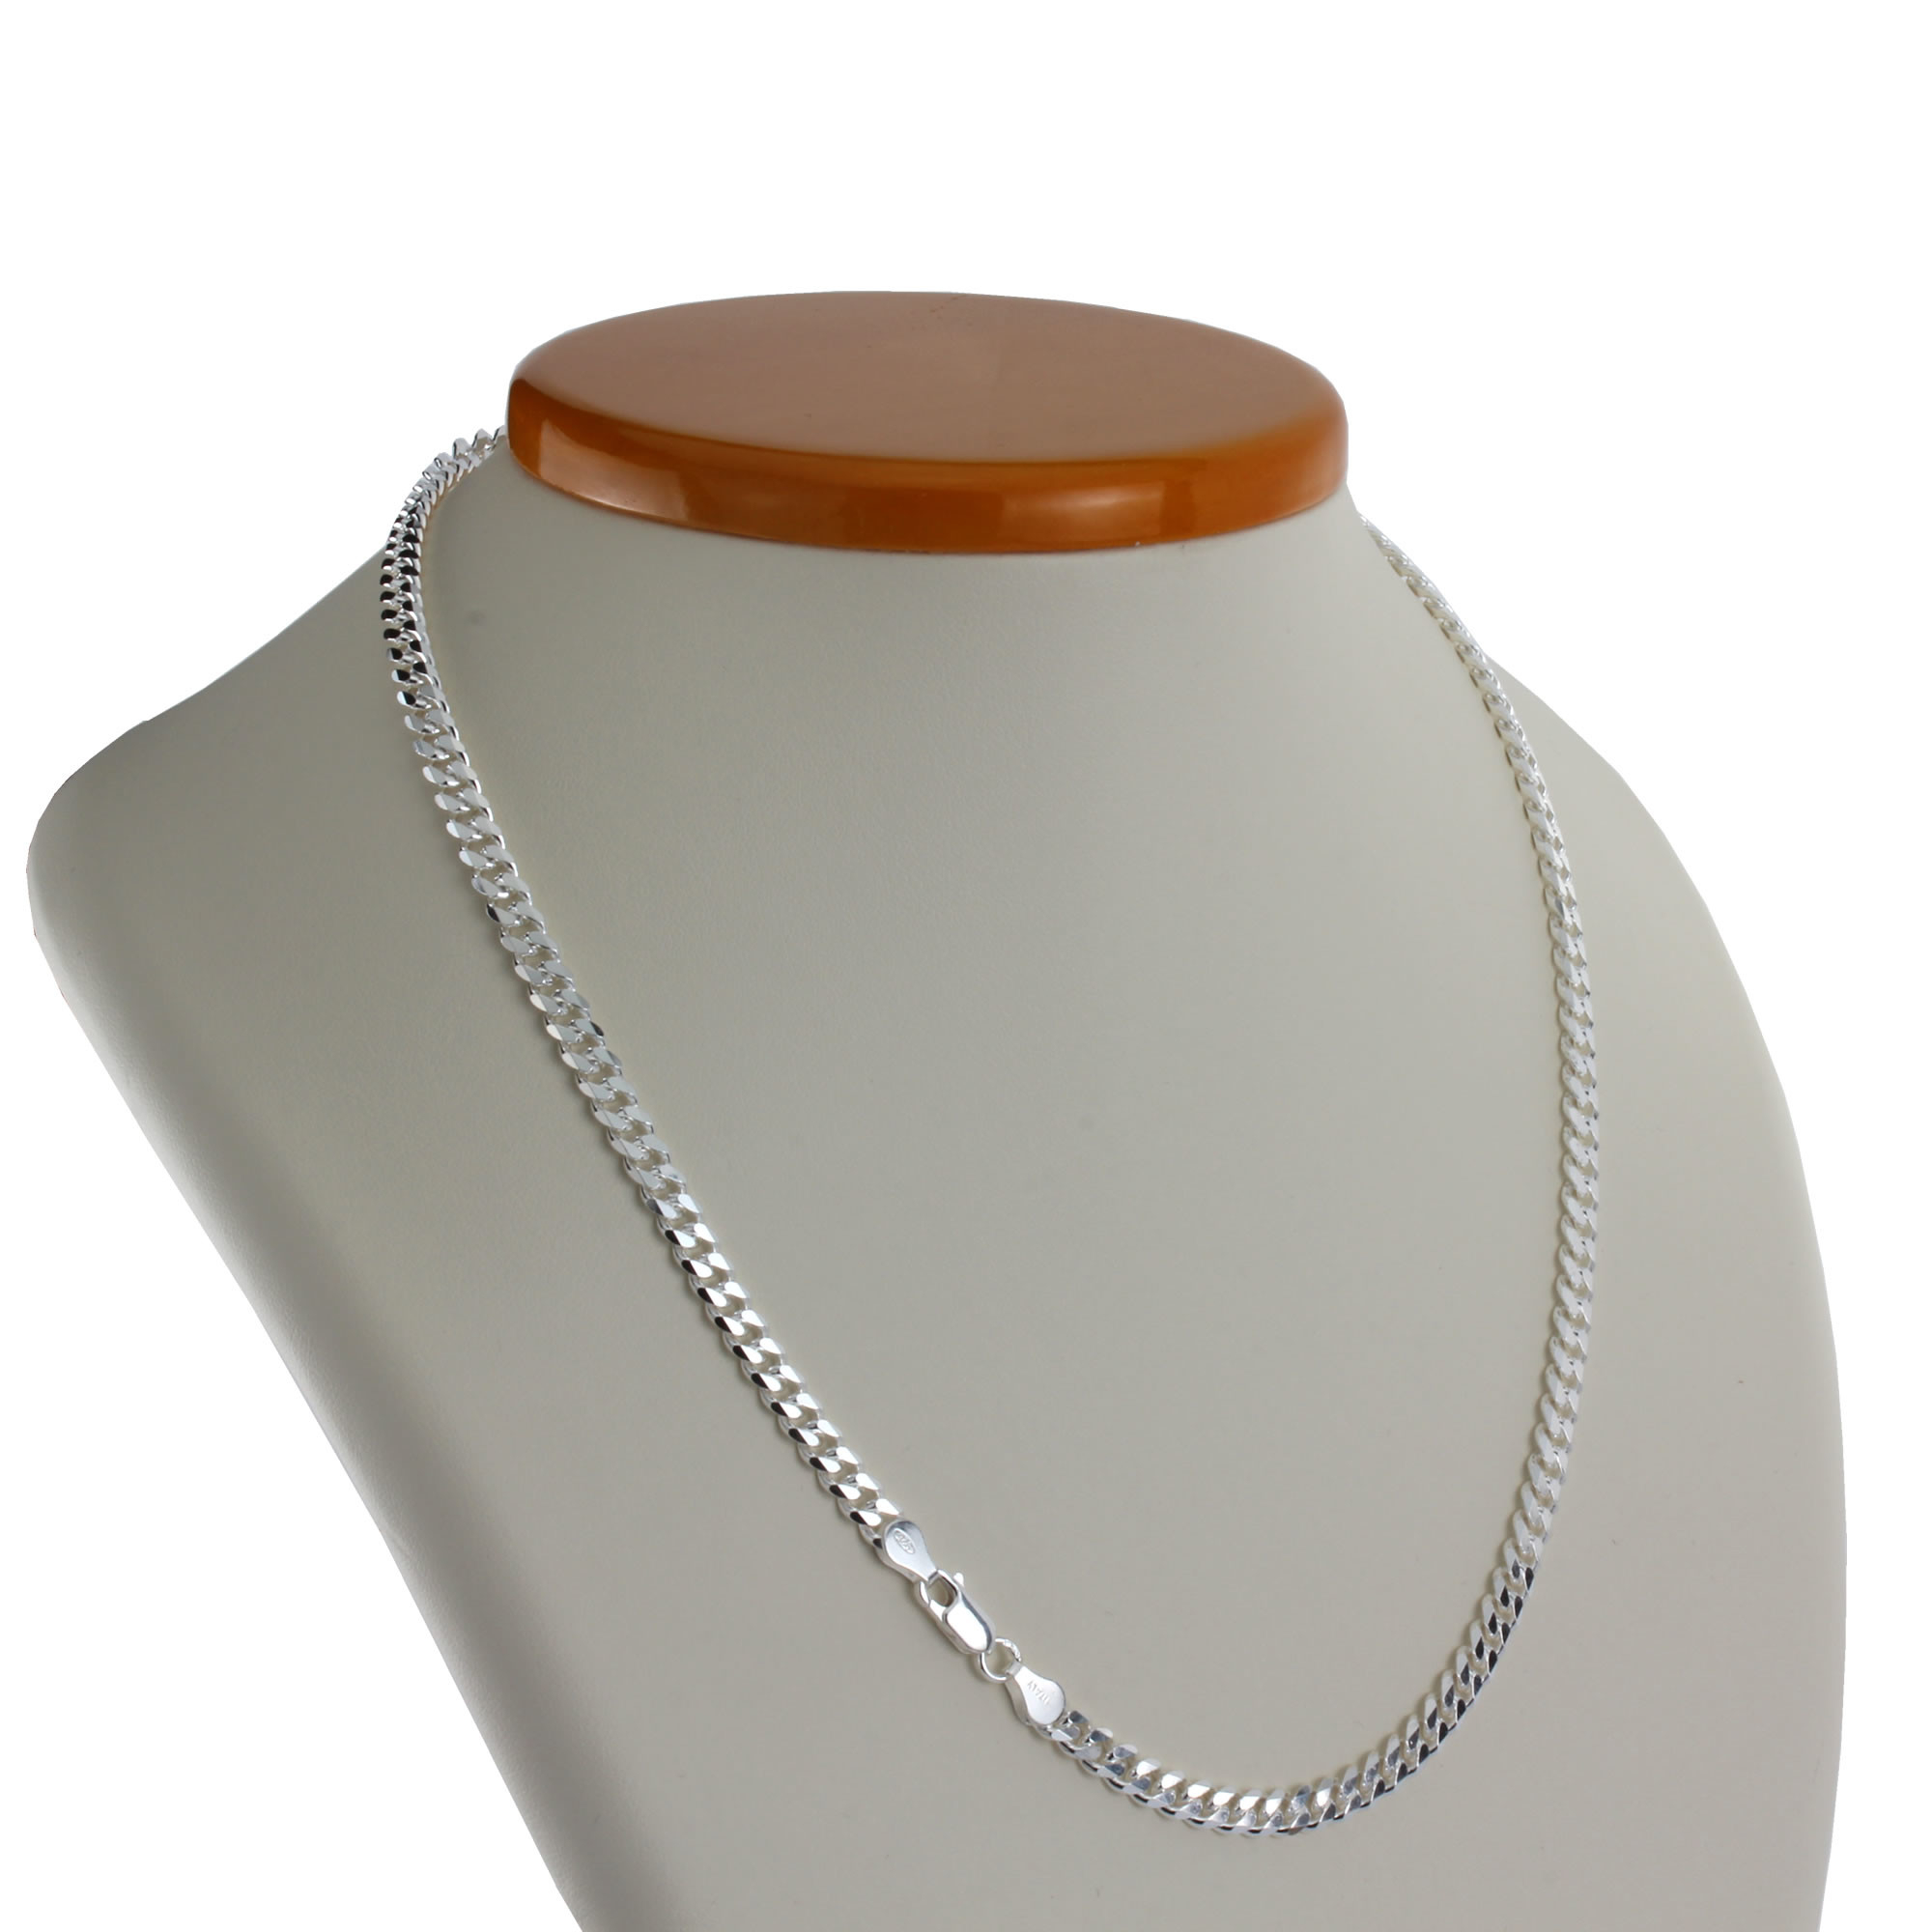 Solid Sterling Silver 5.30Mm Width Curb Chain Pertaining To Recent Curb Chain Necklaces (Gallery 15 of 25)